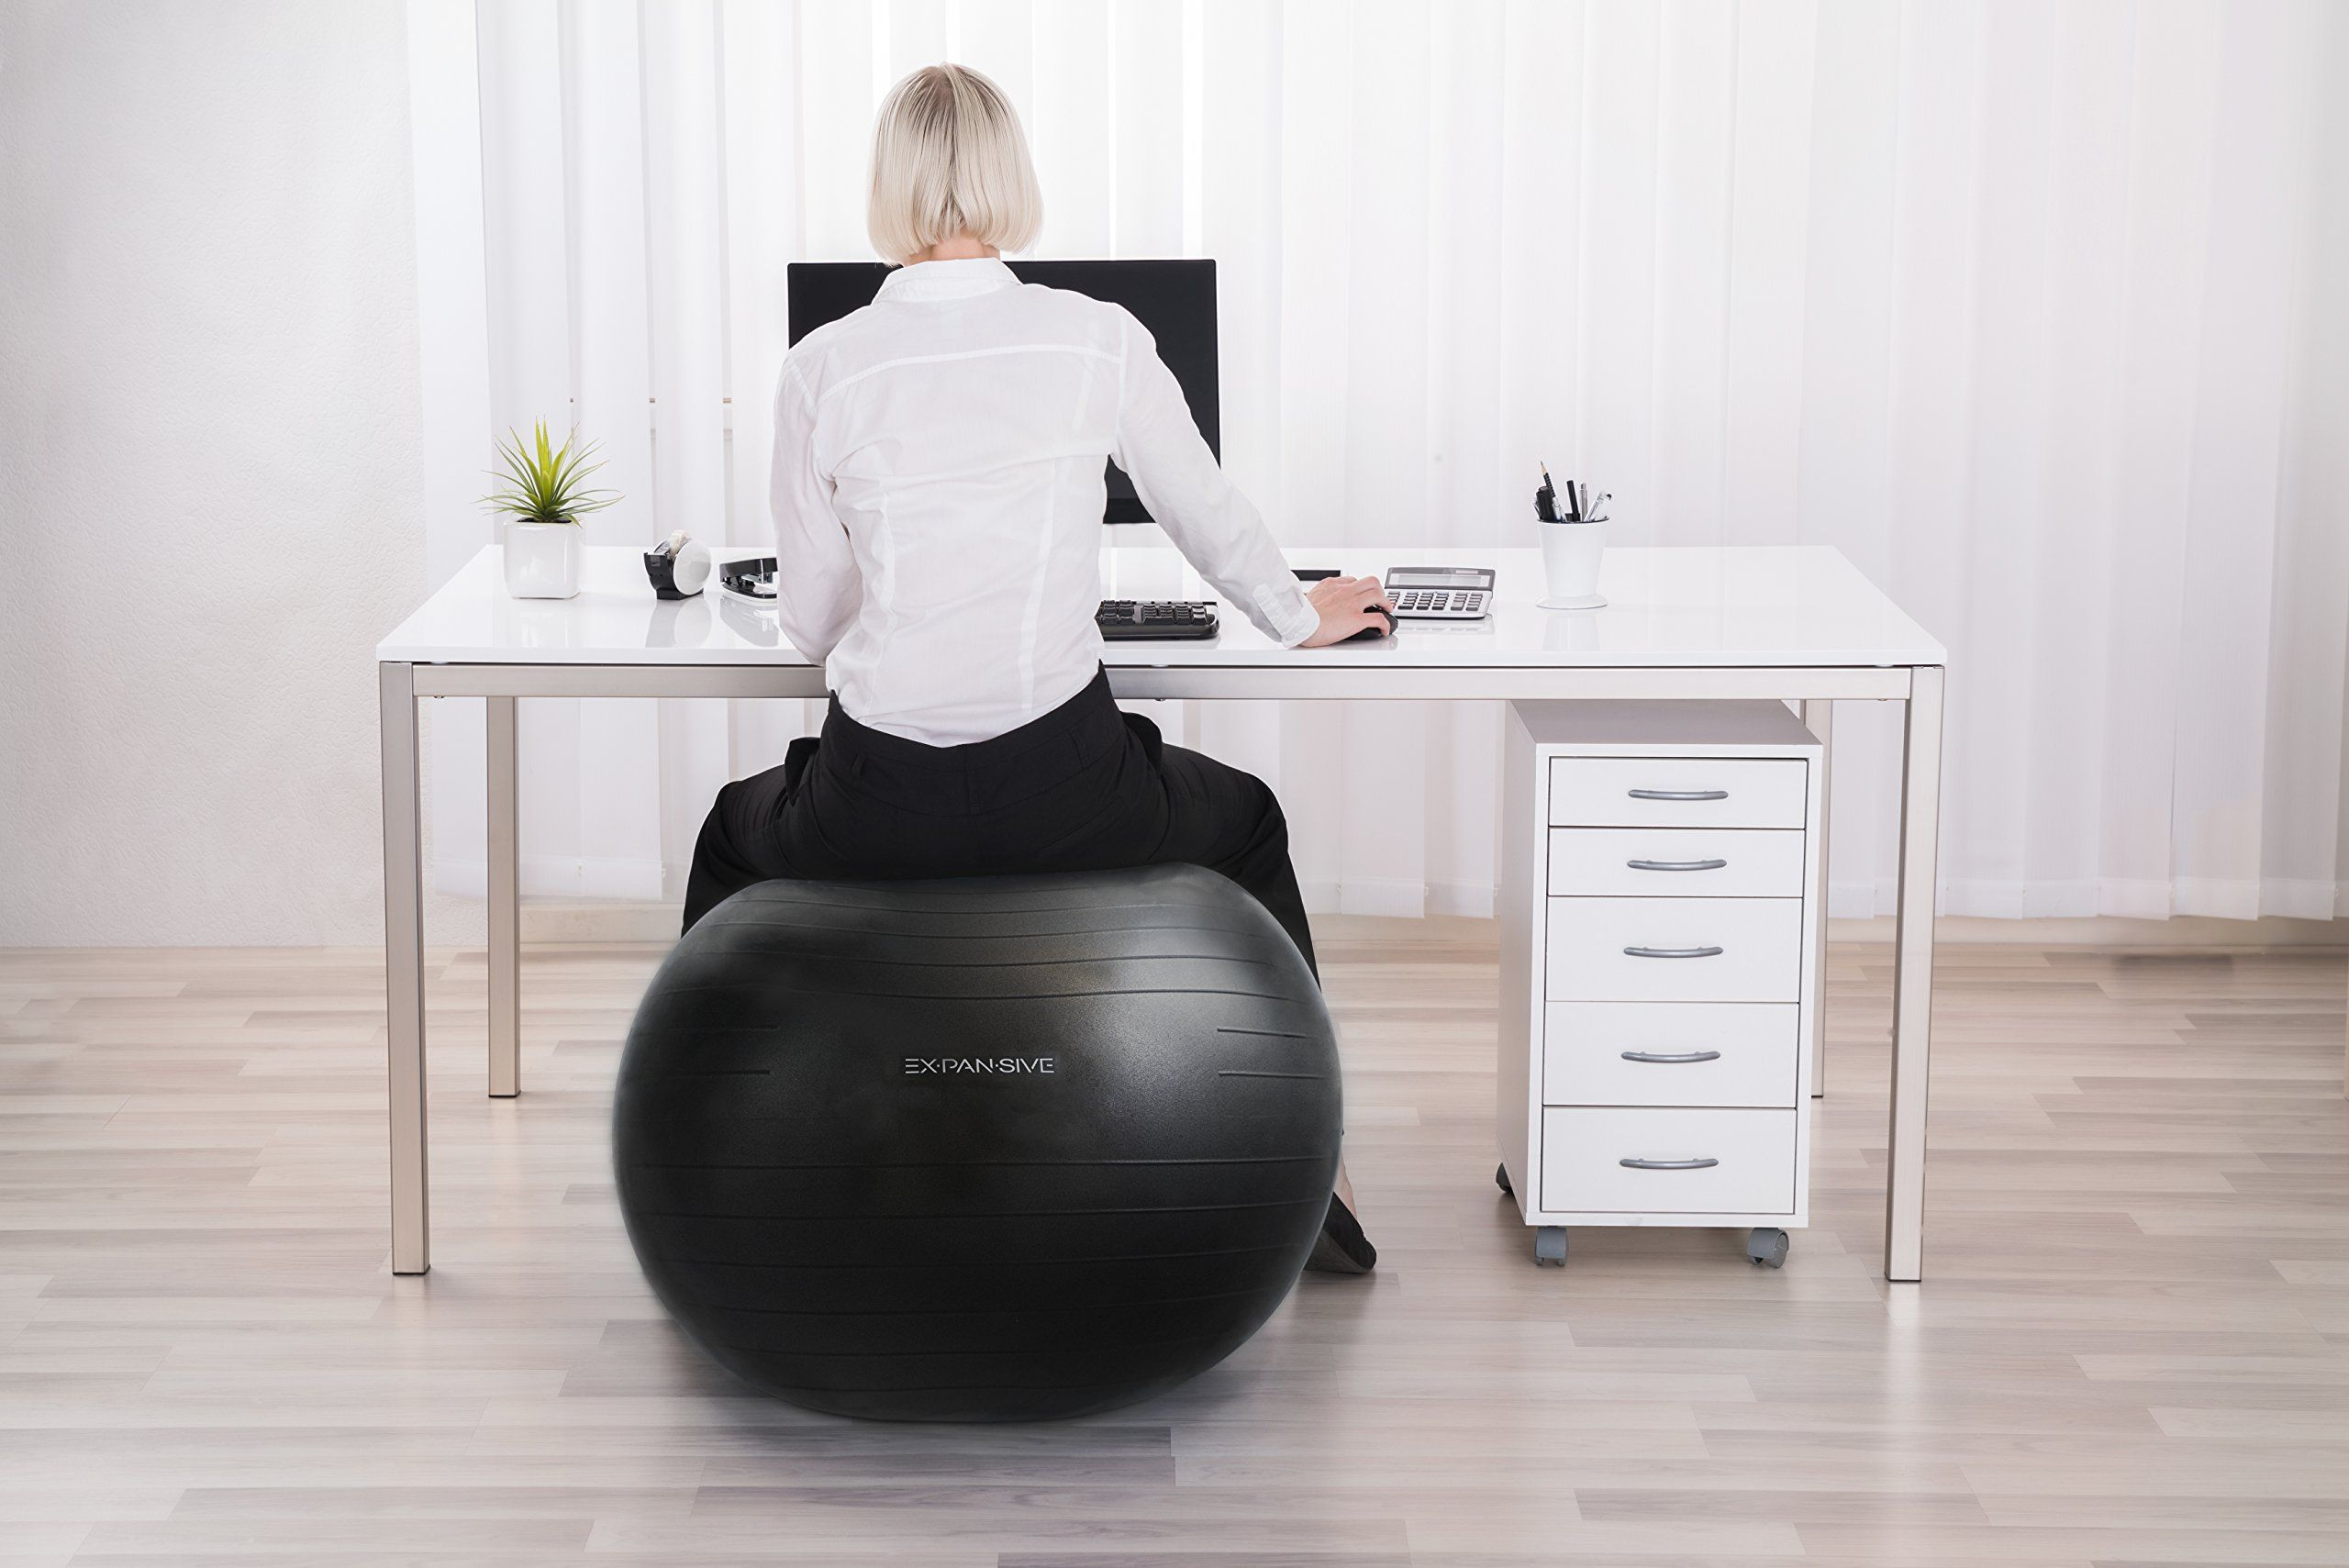 Yoga Ball Desk Chair Anti Burst Exercise Ball Black75 Cm 2000lbs Static Strength